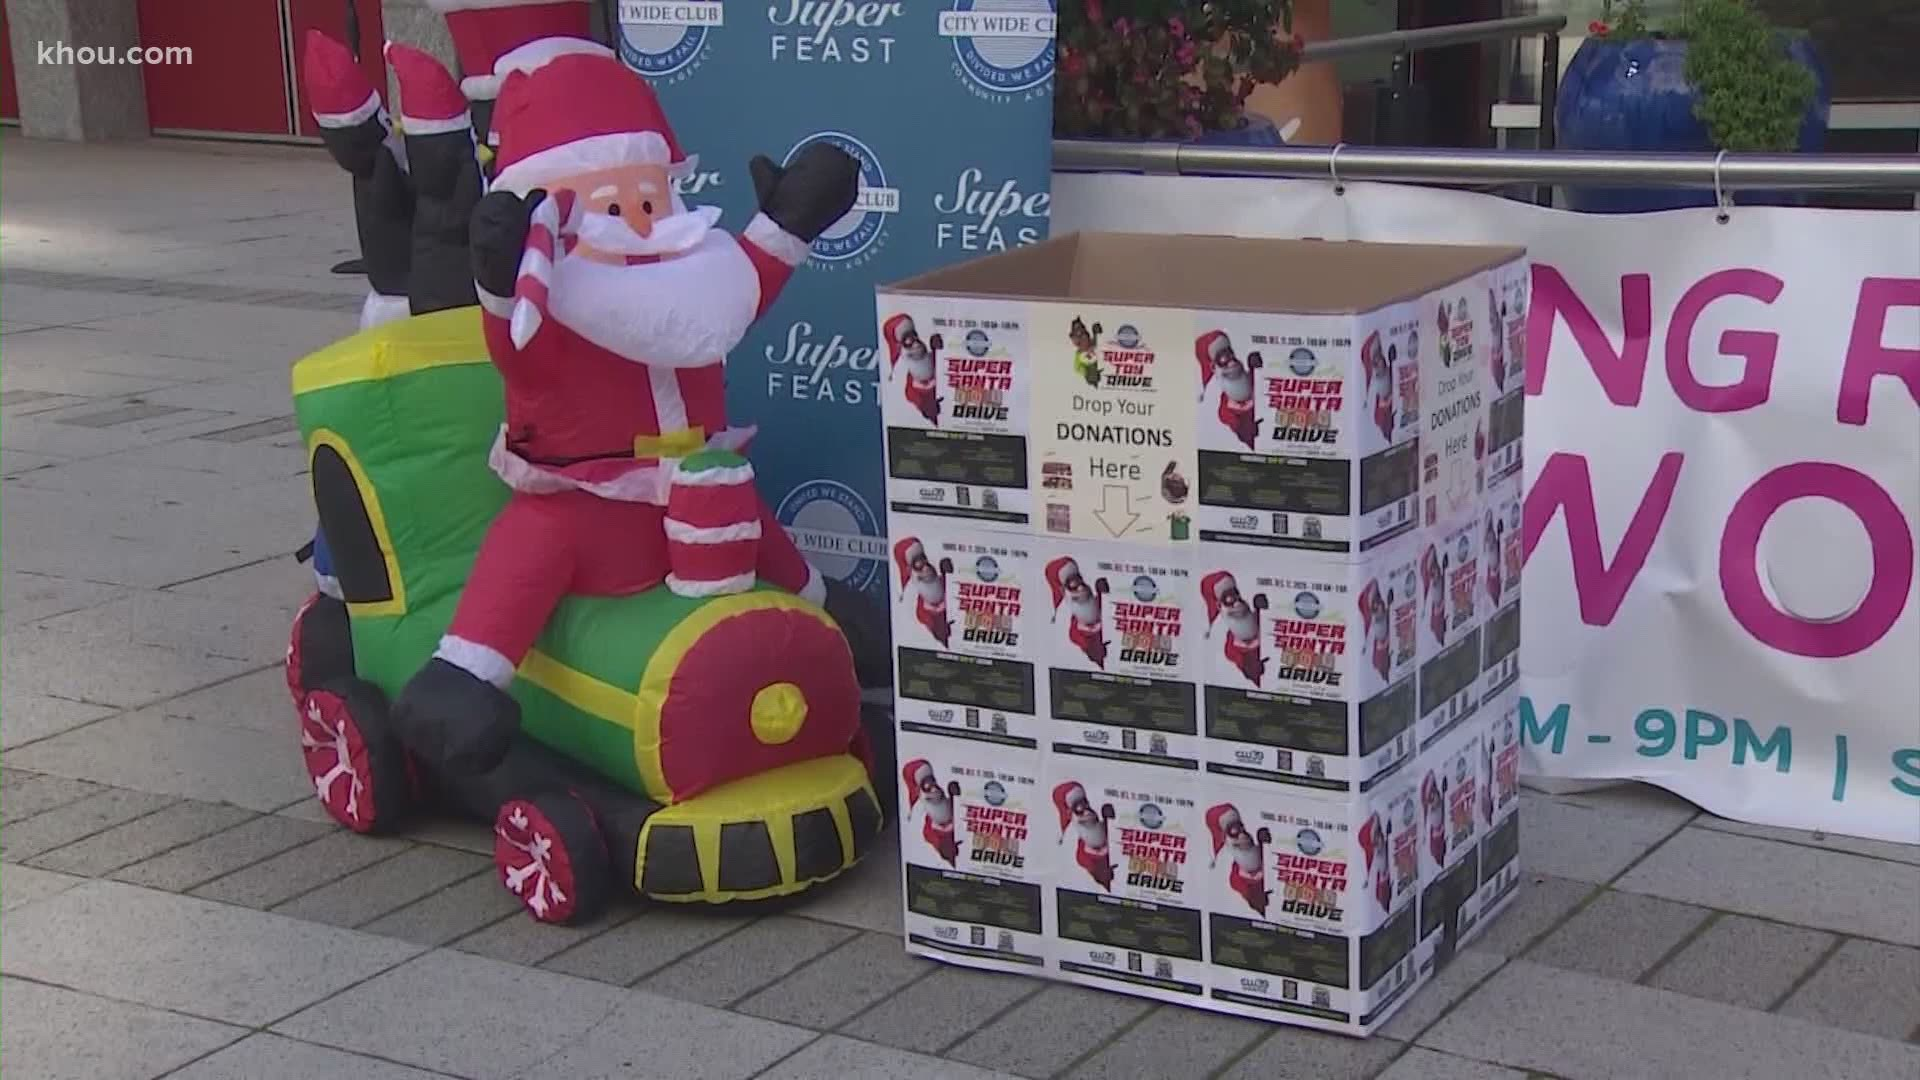 2021 Annual Christmas Toy Giveaway Covinton Ga 50 Cent Makes Surprise Toy Donation Ahead Of Houston Super Feast Khou Com